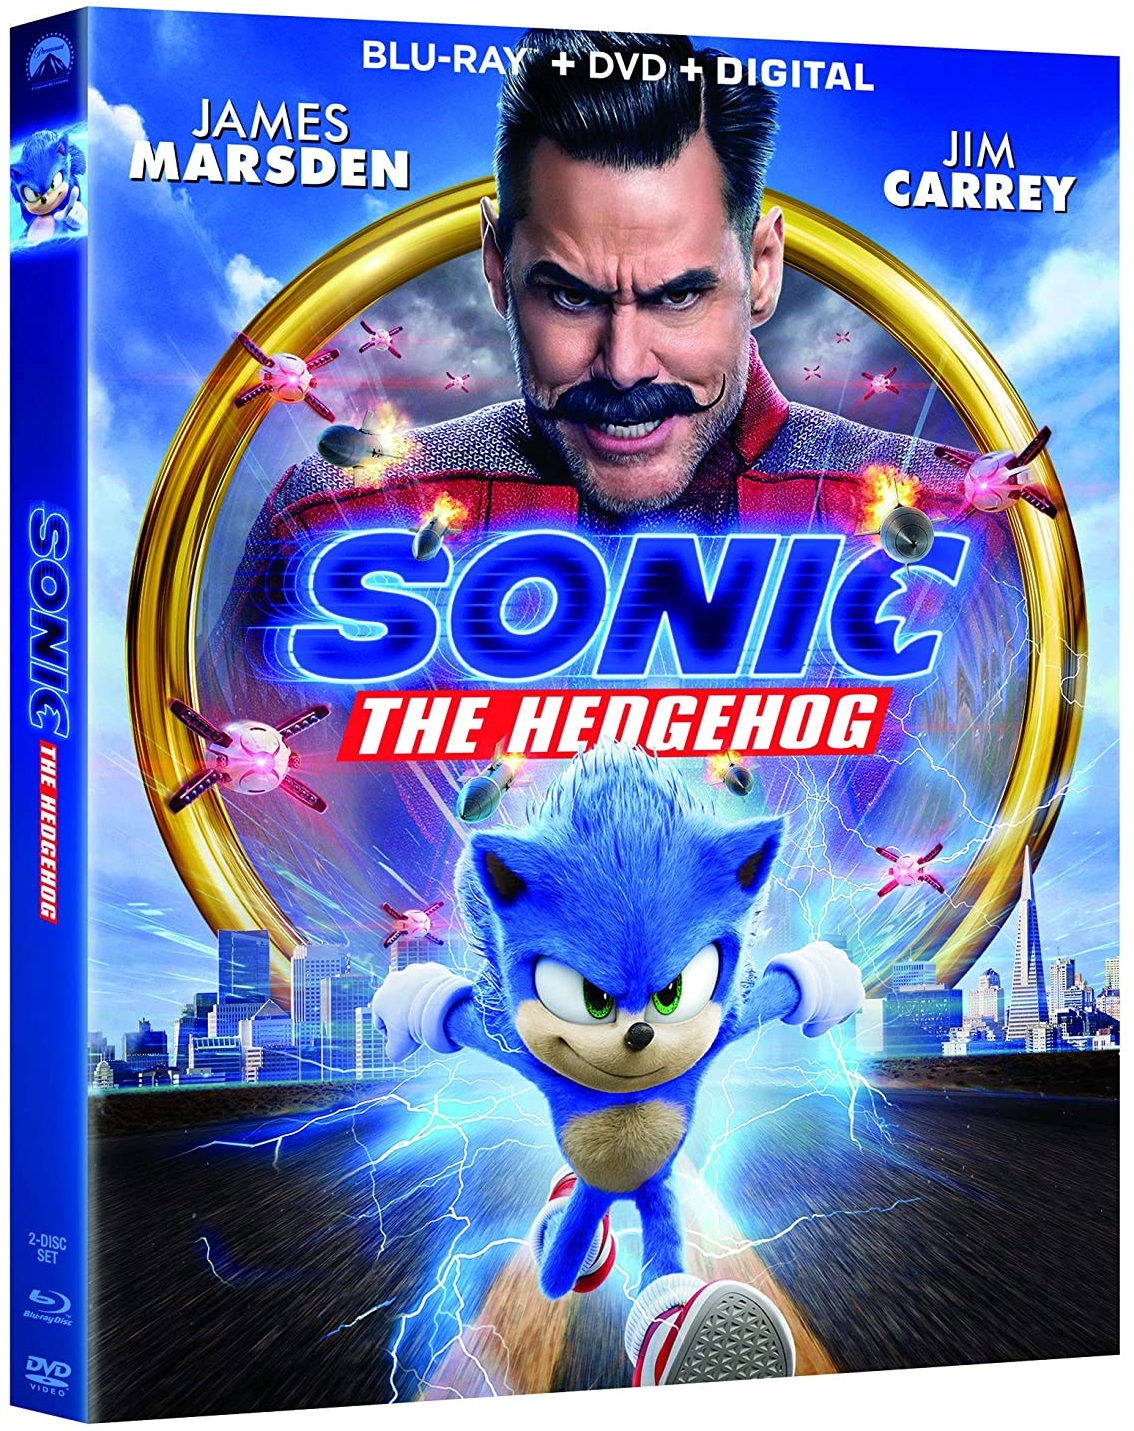 Blu Ray Review Sonic The Hedgehog Available On 4k Ultra Hd Blu Ray Dvd May 19 2020 From Paramount Screen Connections